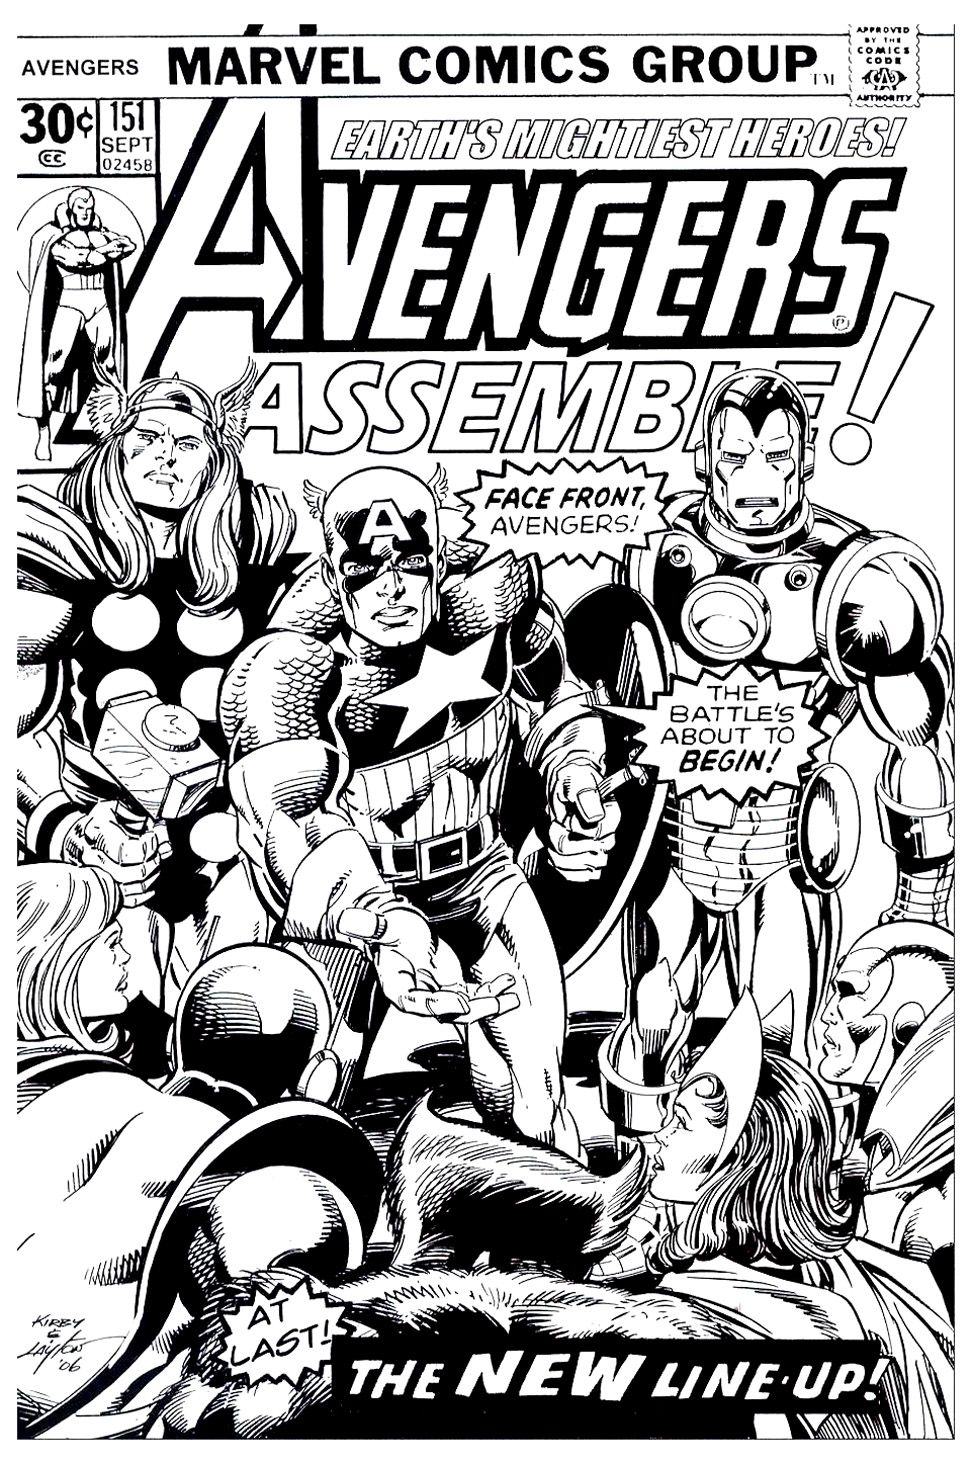 coloring-adult-avengers-couverture, From the gallery : Books & Comics